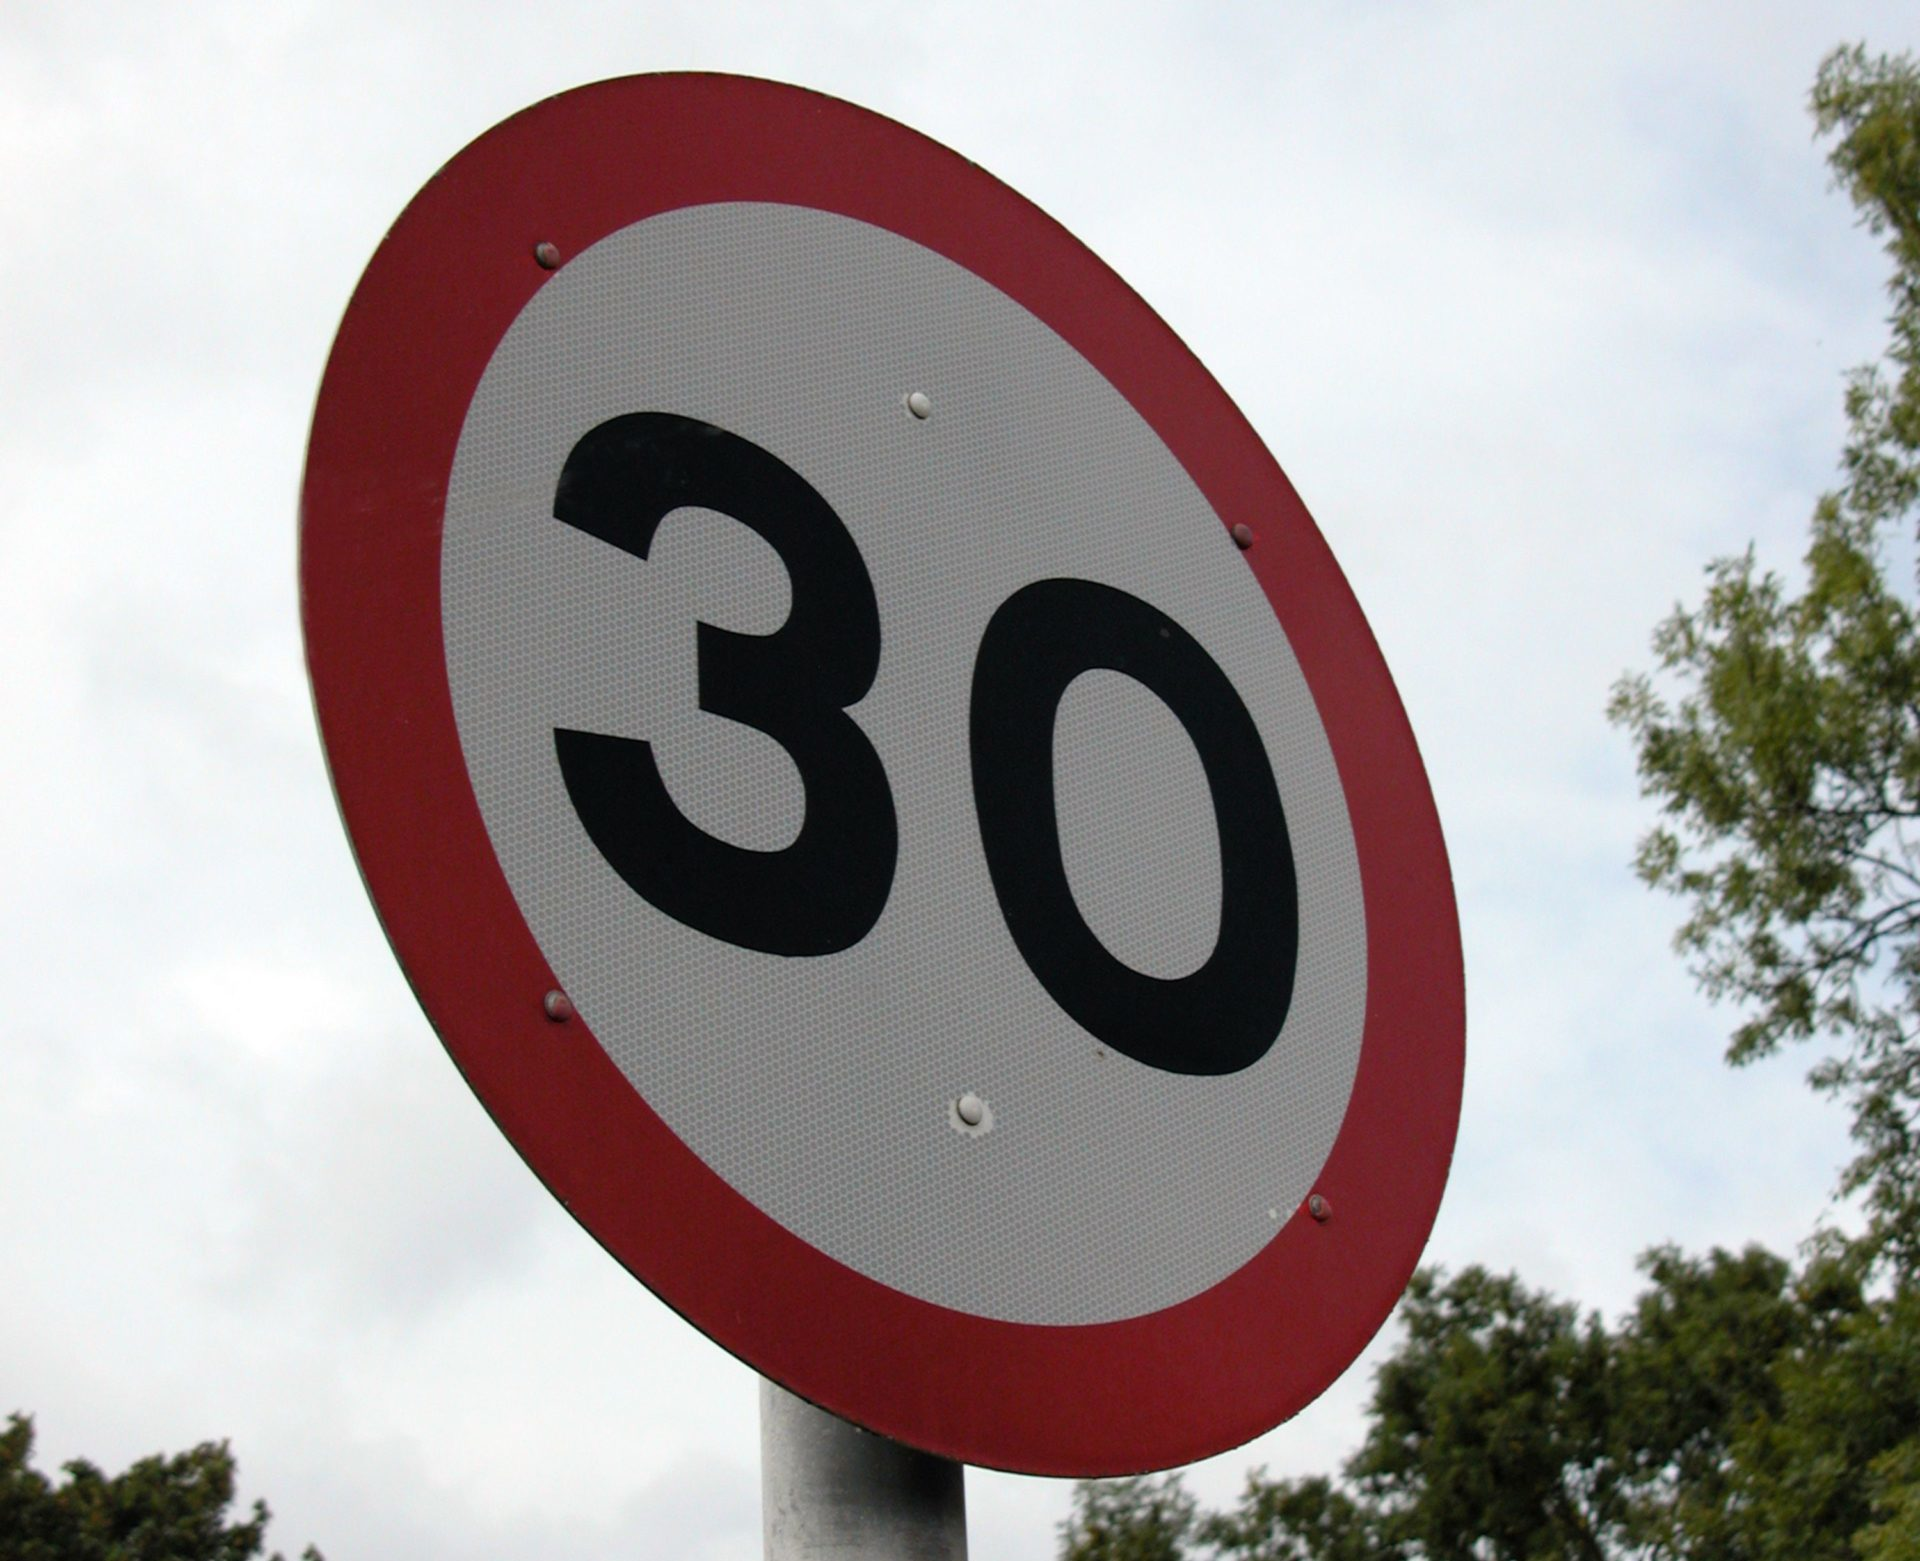 A 30mph speed limit is currently in place on the B993 St Marnan Road in Torphins